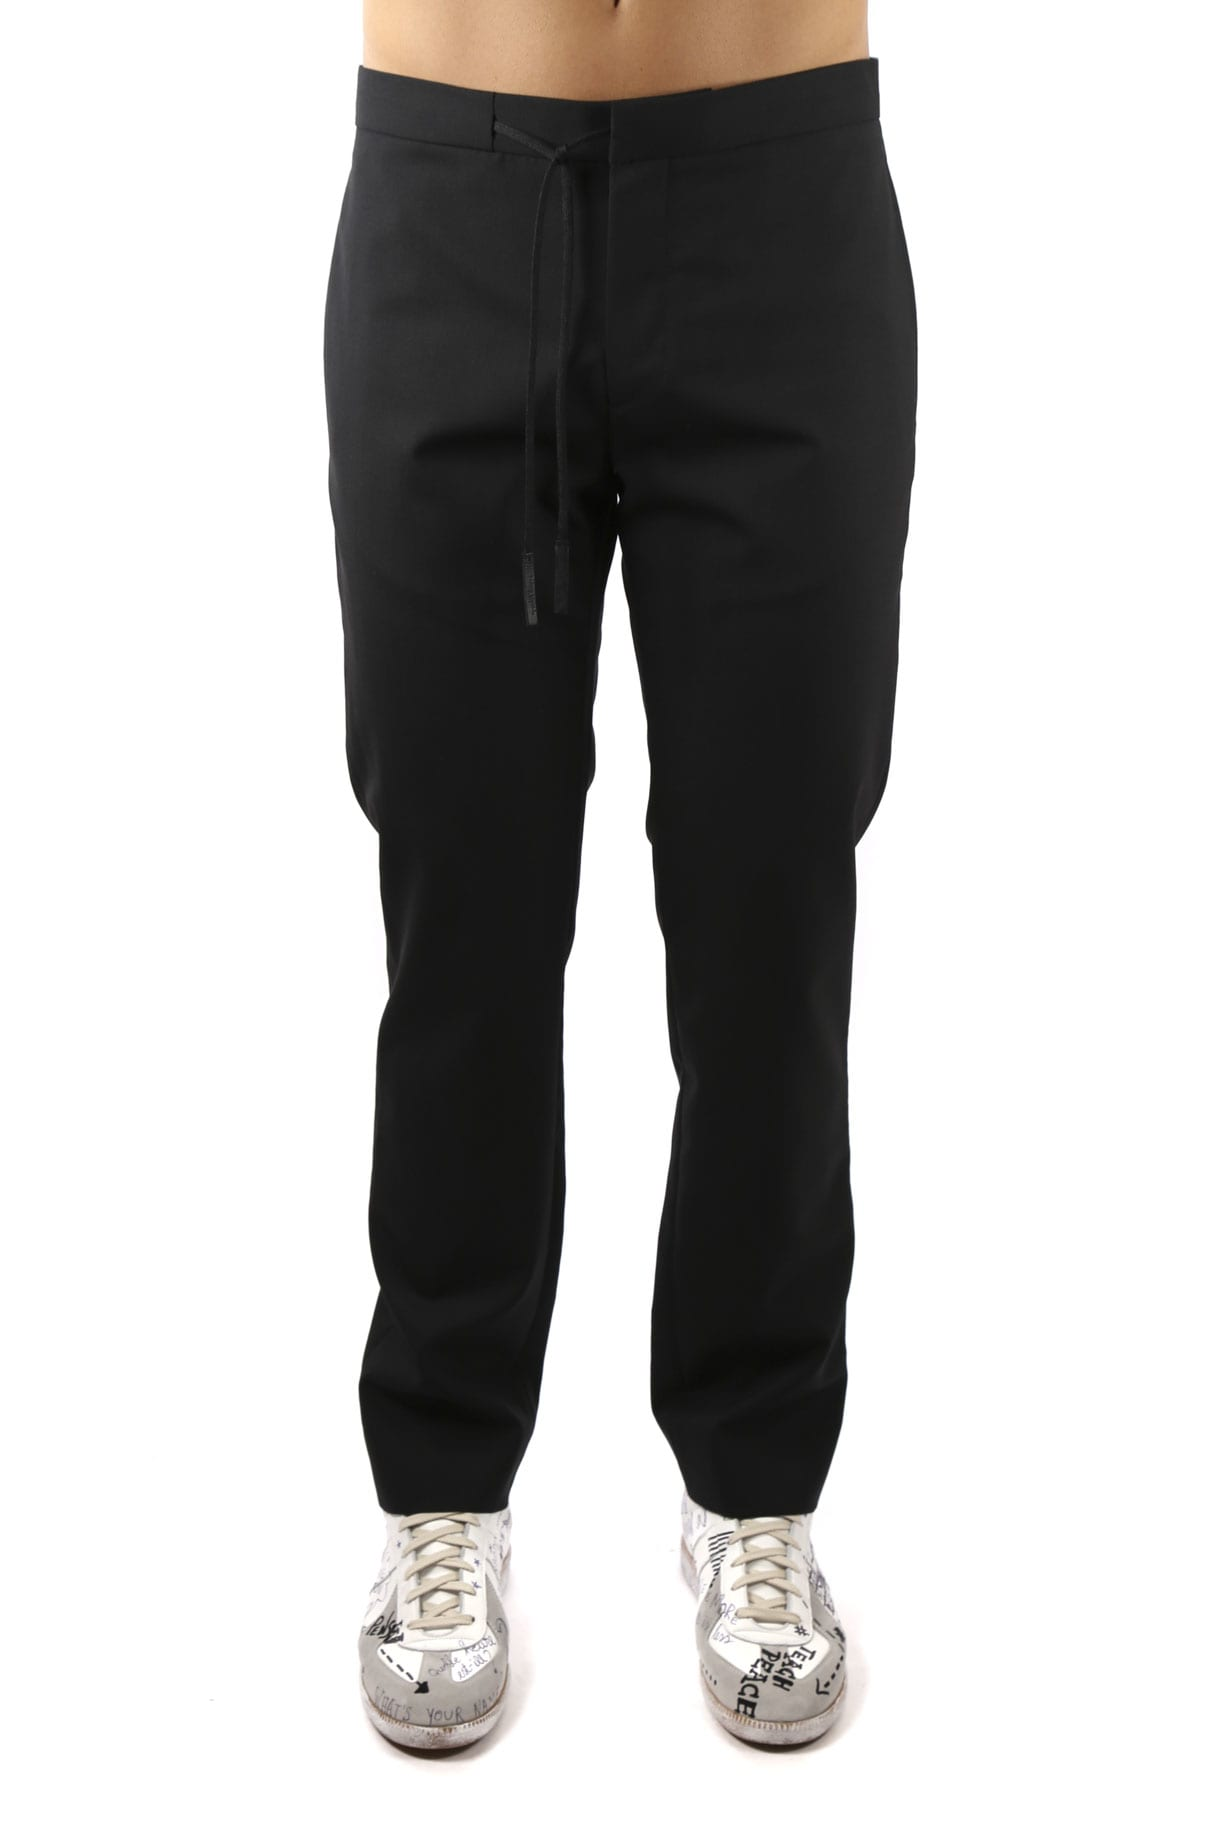 Maison Margiela Black Wool Waistband Jogging Pants